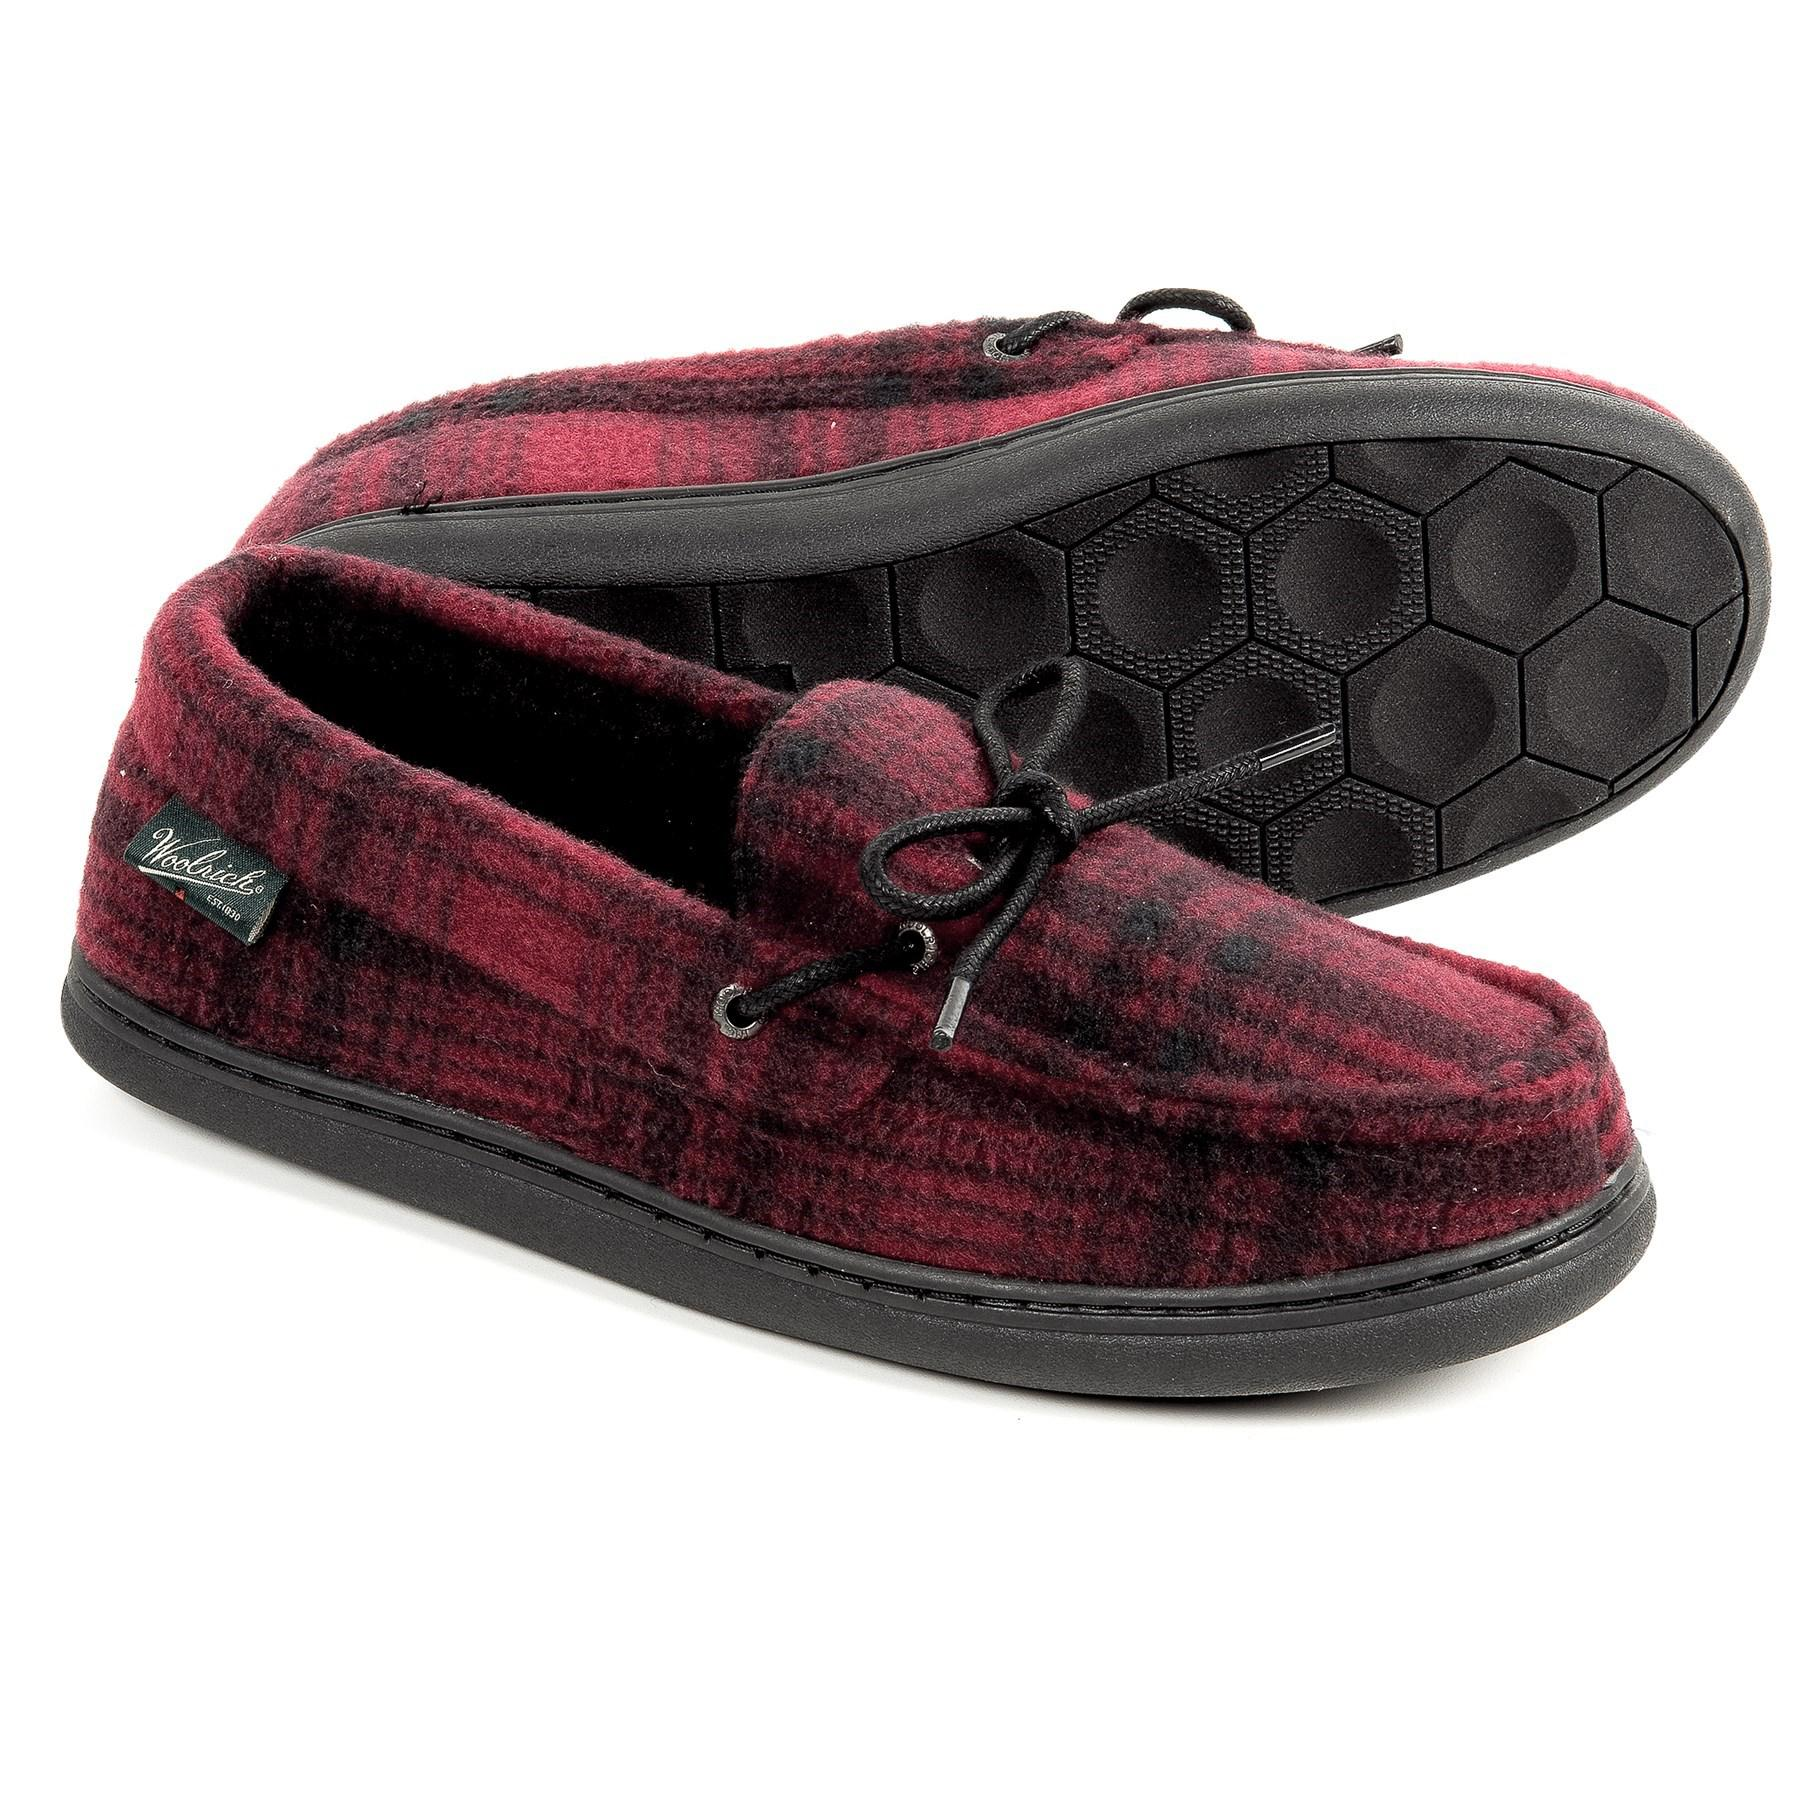 ad752f8766b Lyst - Woolrich Lewisburg Moccasins (for Men) in Red for Men